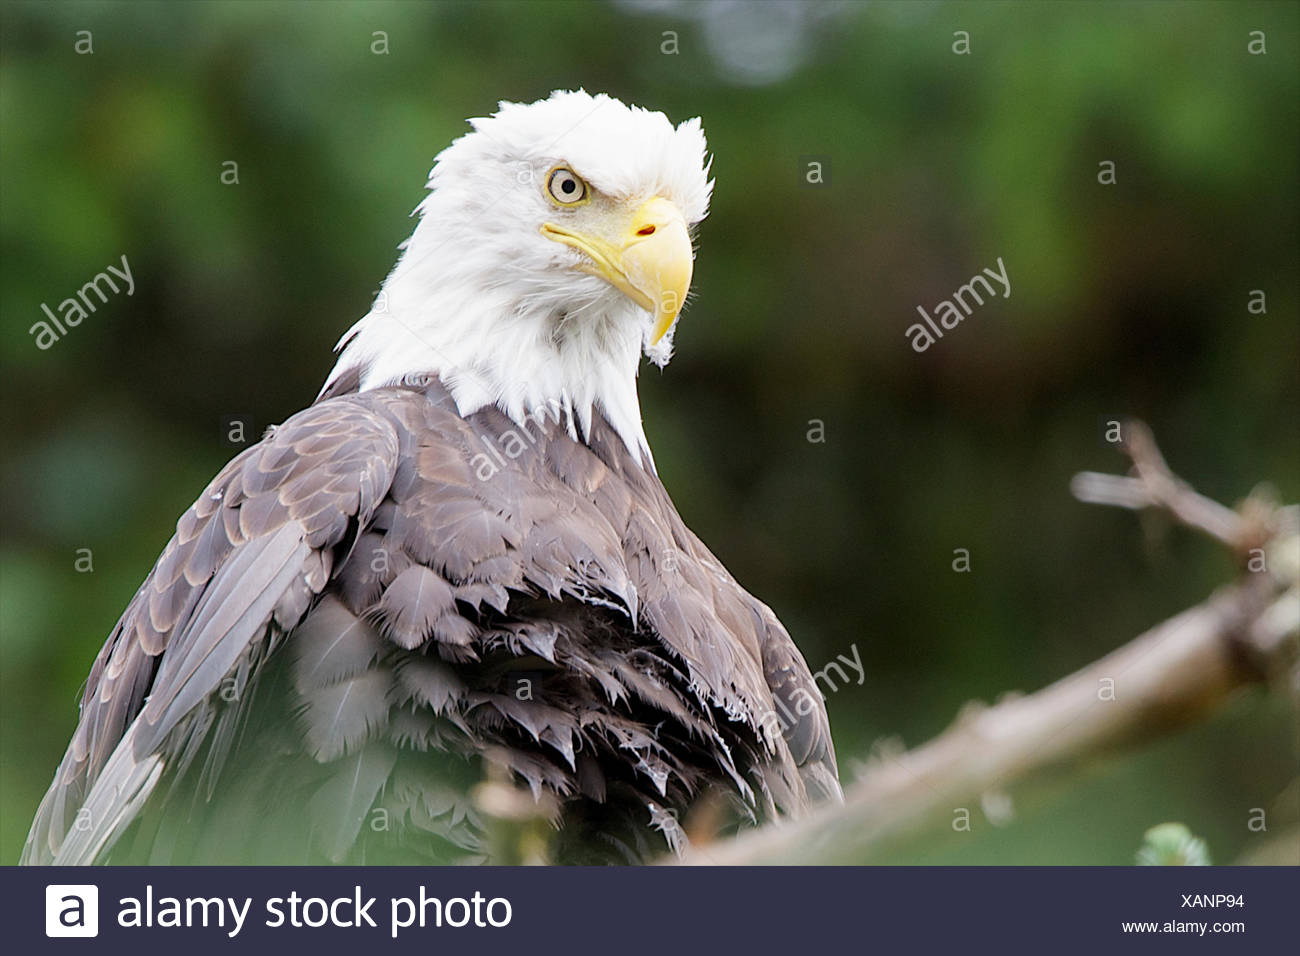 The stare of a bald eagle. - Stock Image